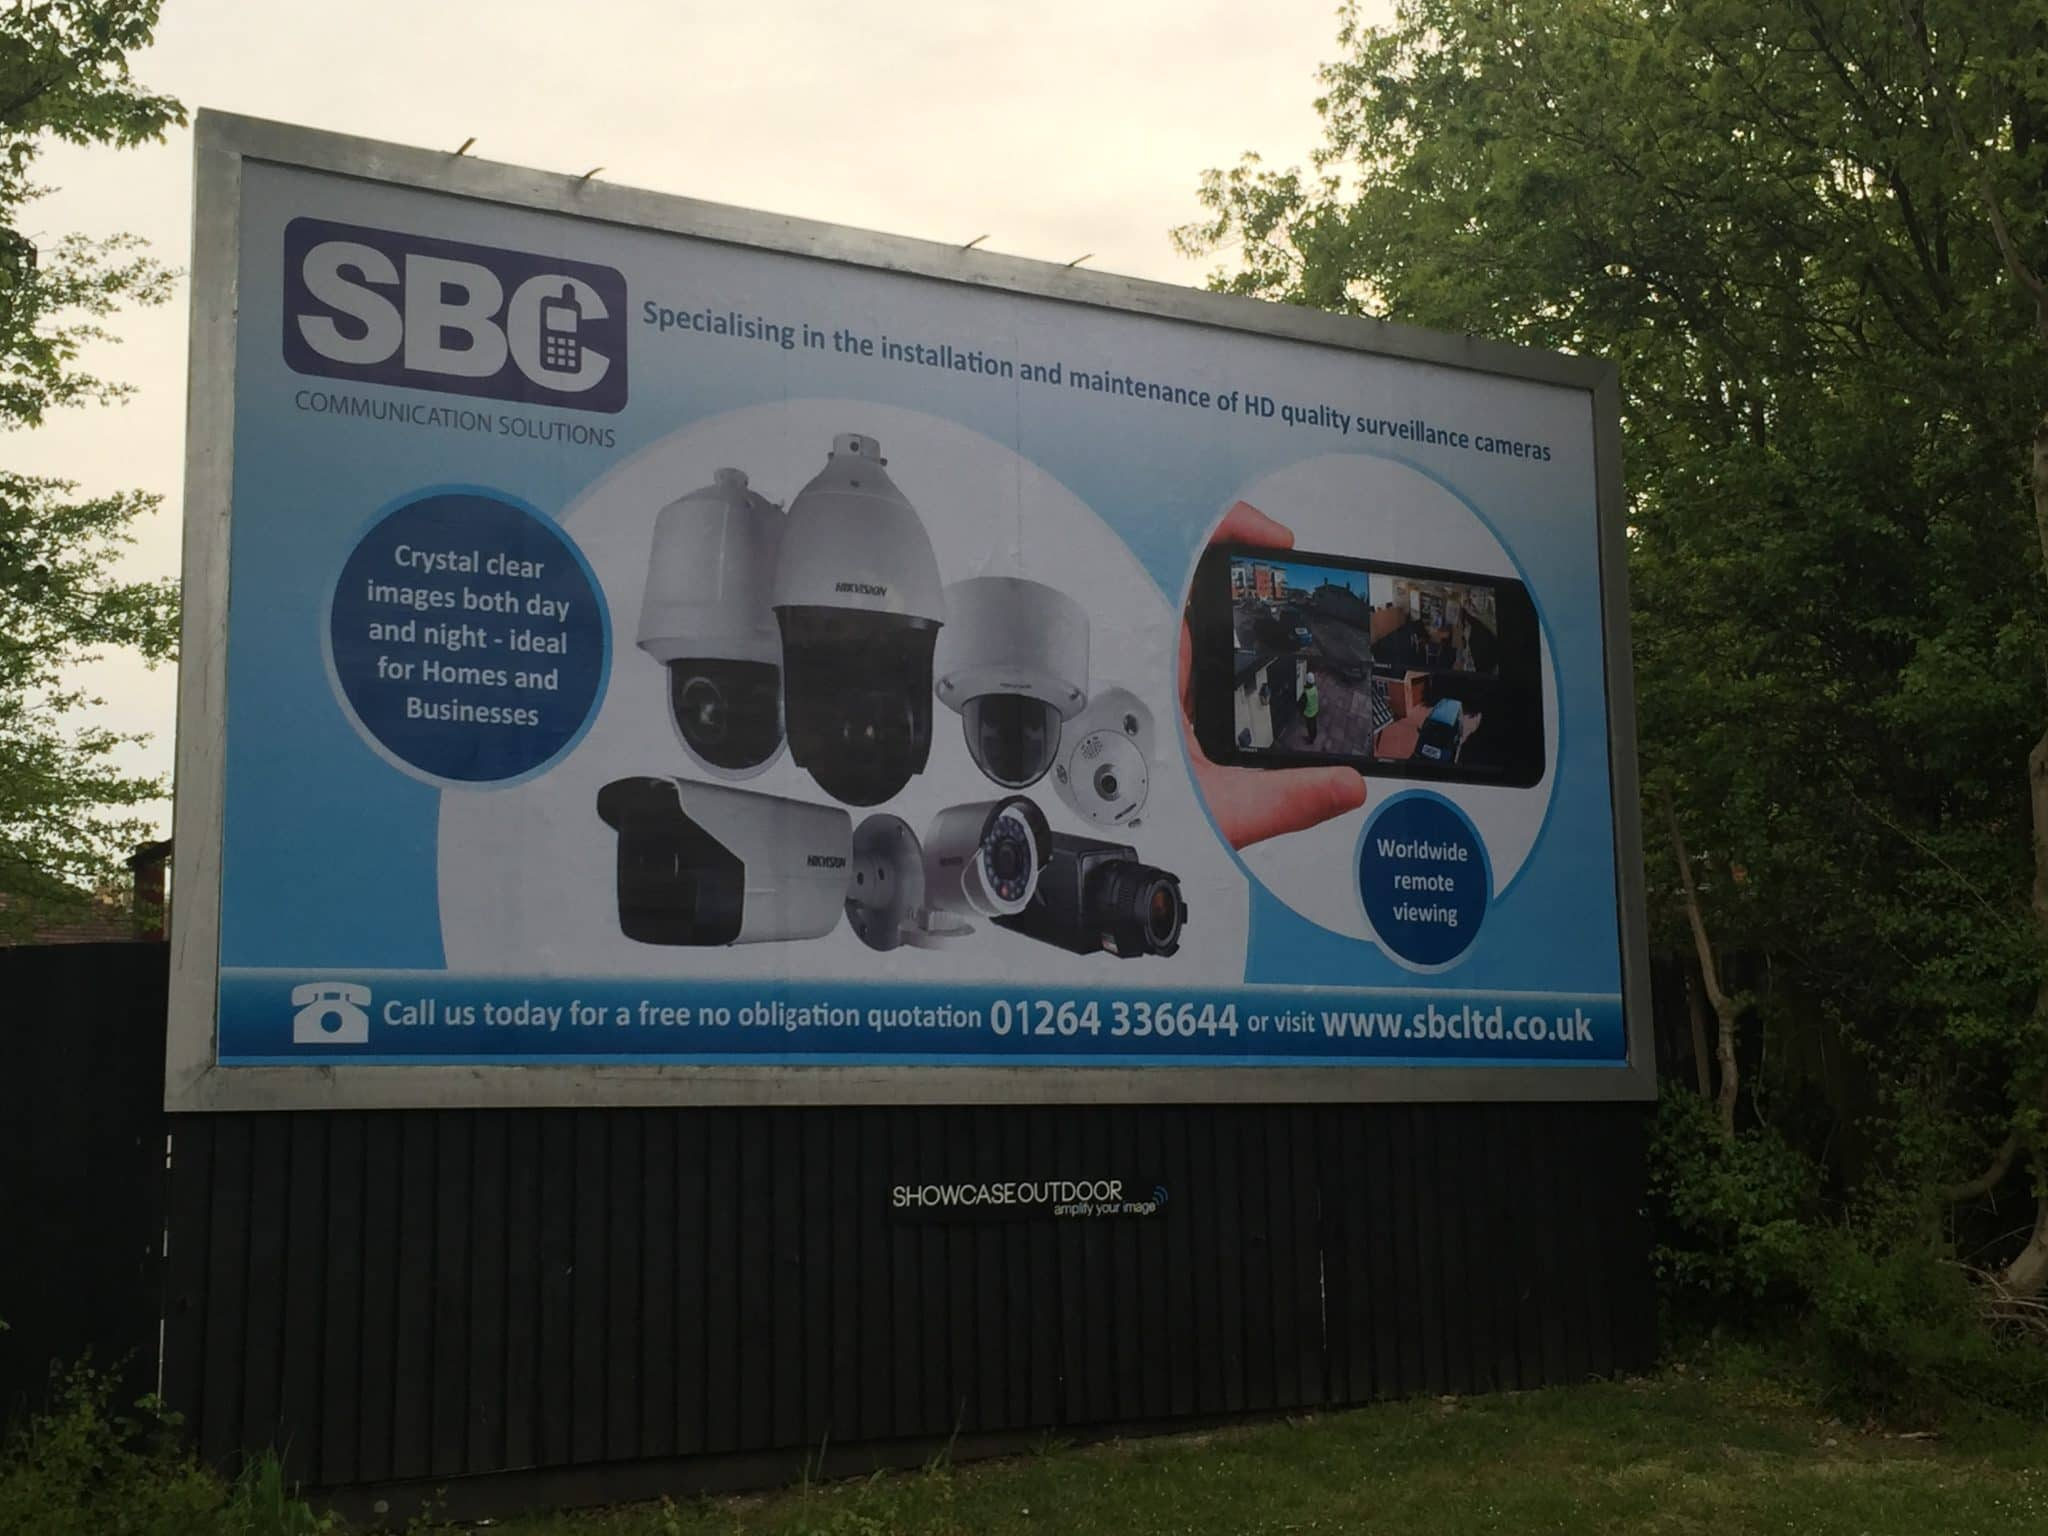 SBC HD CCTV Surveillance Cameras Go LARGE!